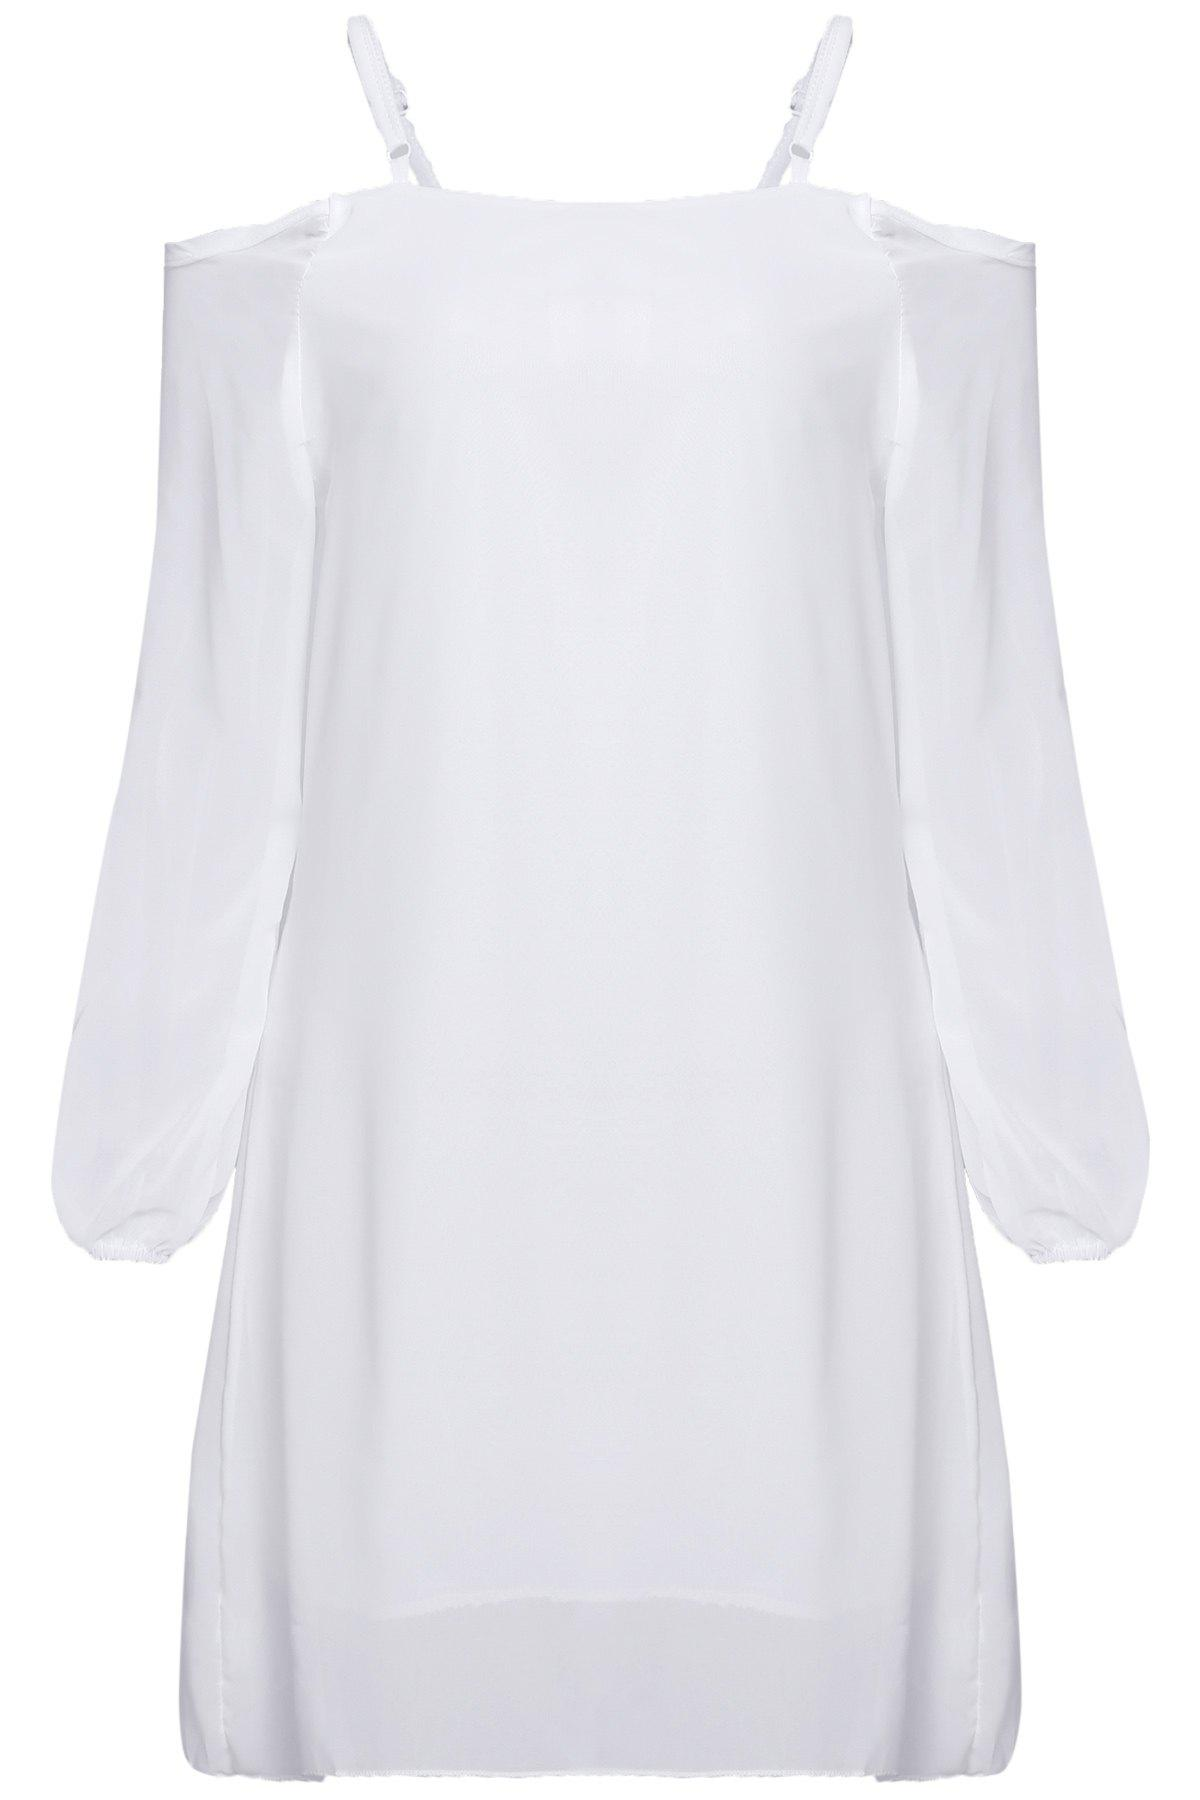 Long Sleeve Cold Shoulder Tunic Shift Dress - WHITE S